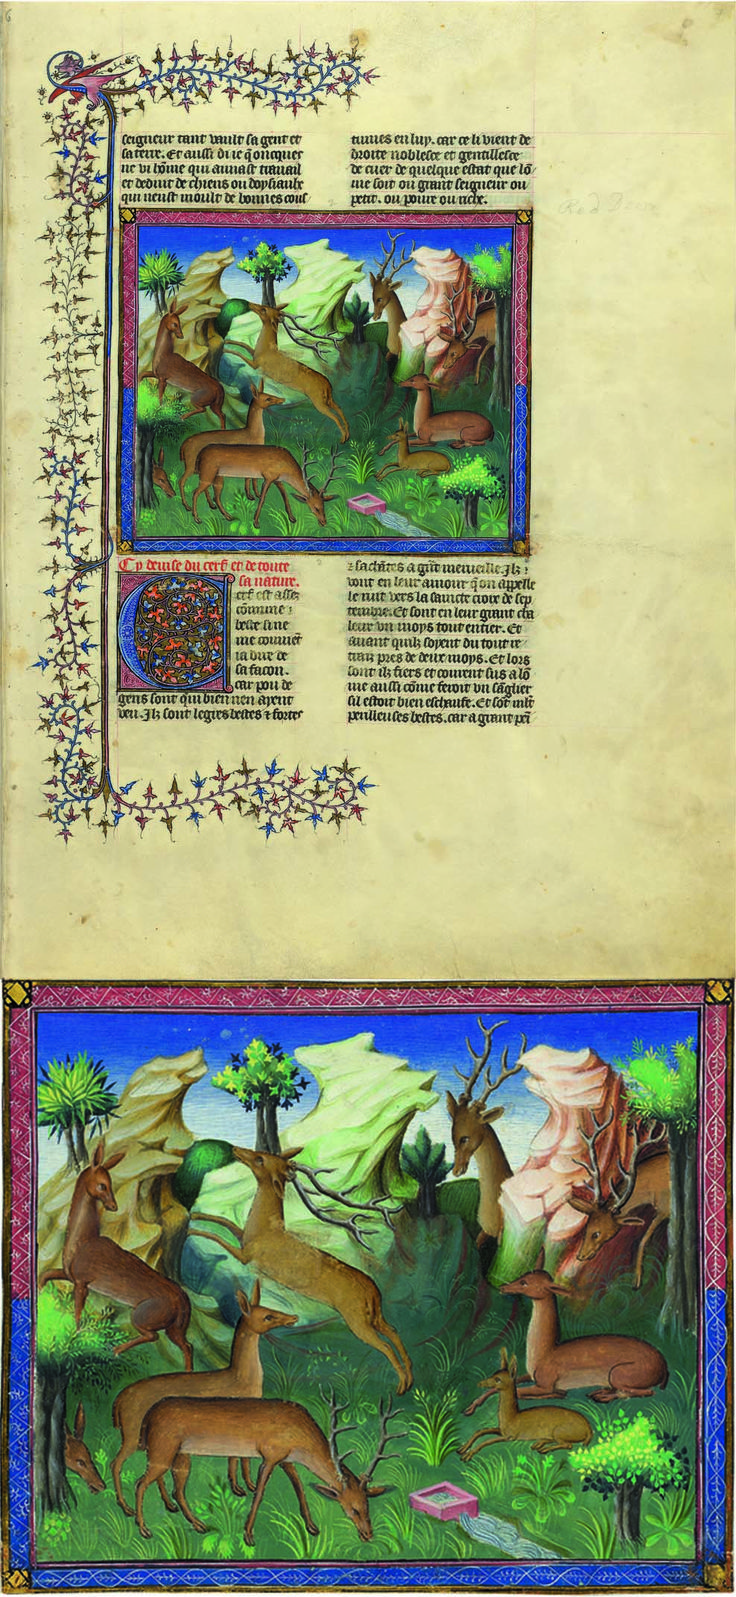 The Hart | Livre de la chasse, in French and Latin | Text by Gaston III Phoebus, Count of Foix (1331–1391) | Illuminated by a Master of the Bedford Trend | France, Paris | ca. 1407 | The Morgan Library & Museum